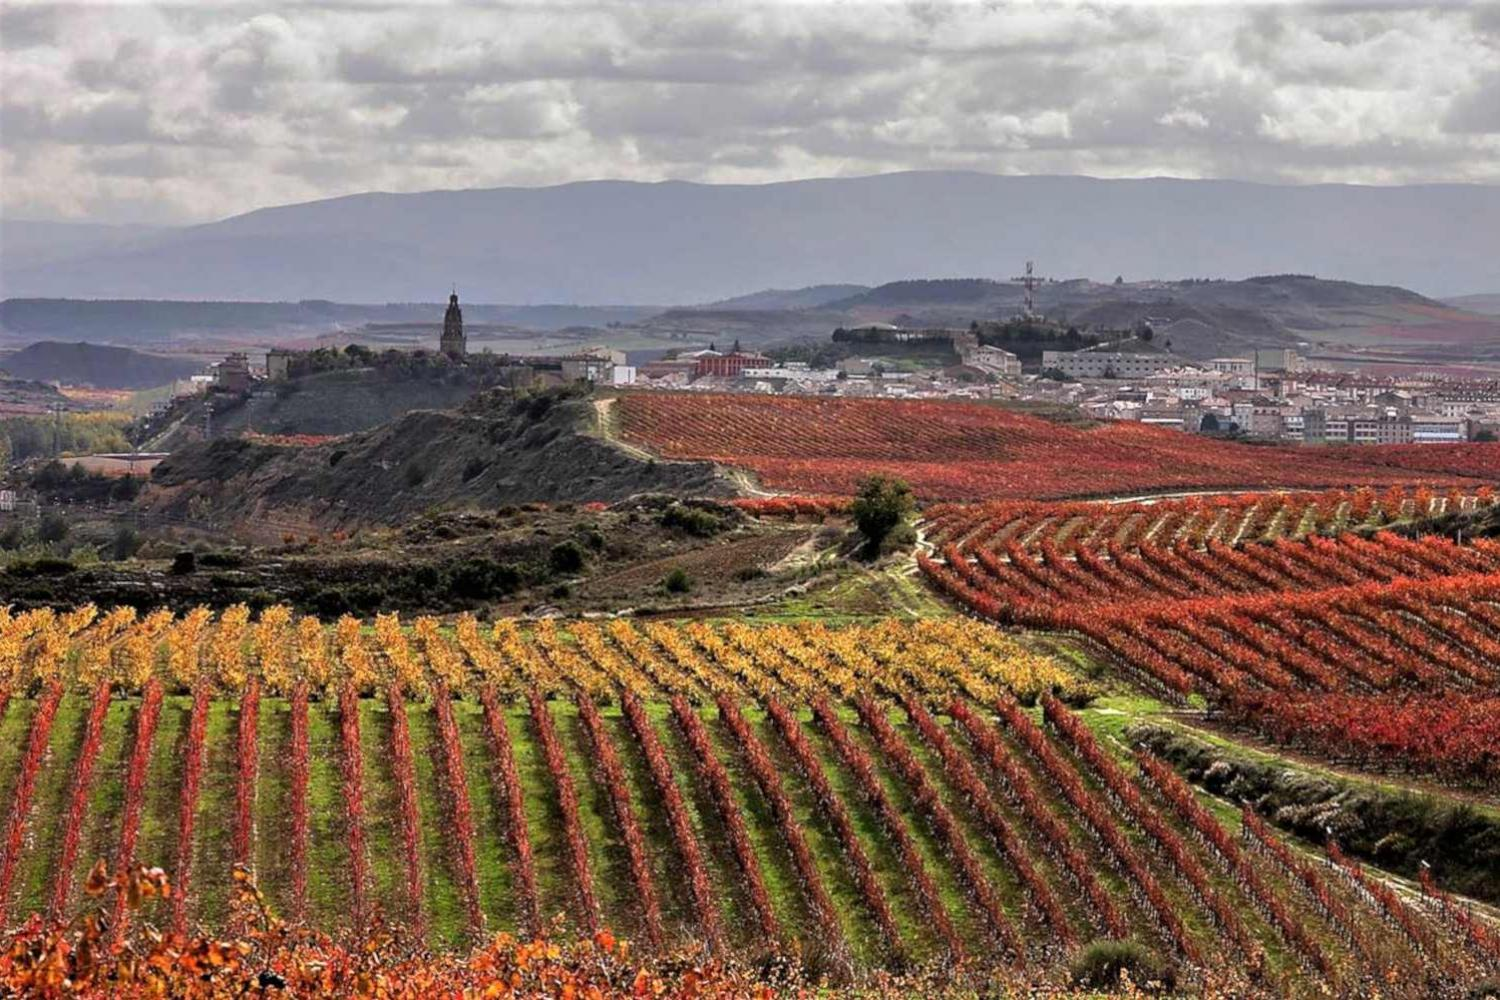 Landscape in Rioja during a 2 day tour from Bilbao